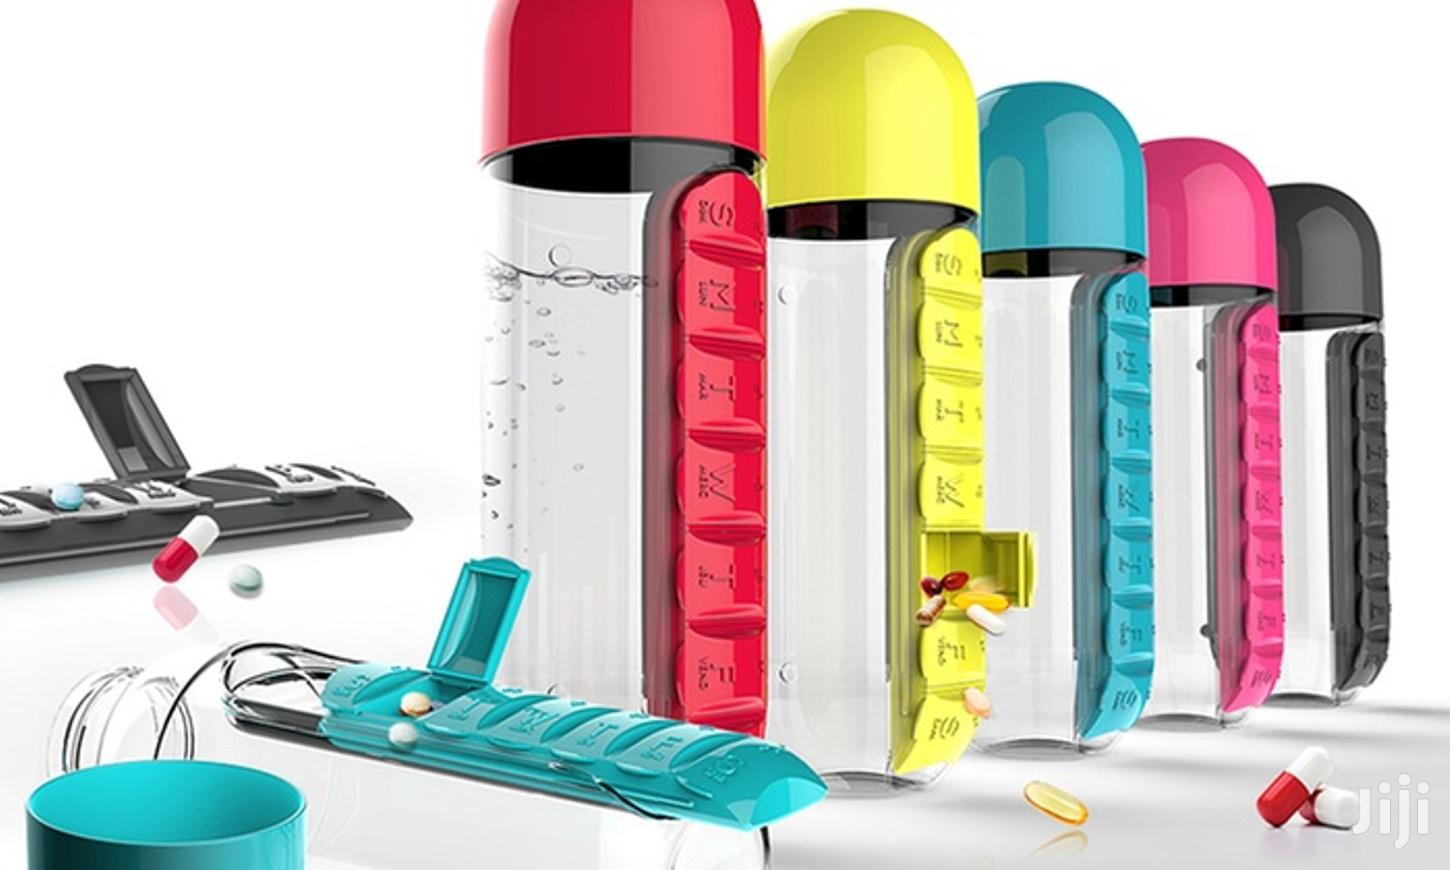 Water Bottle, 600ml With Built-in 7 Day Pill Organizer & Drinking Cup